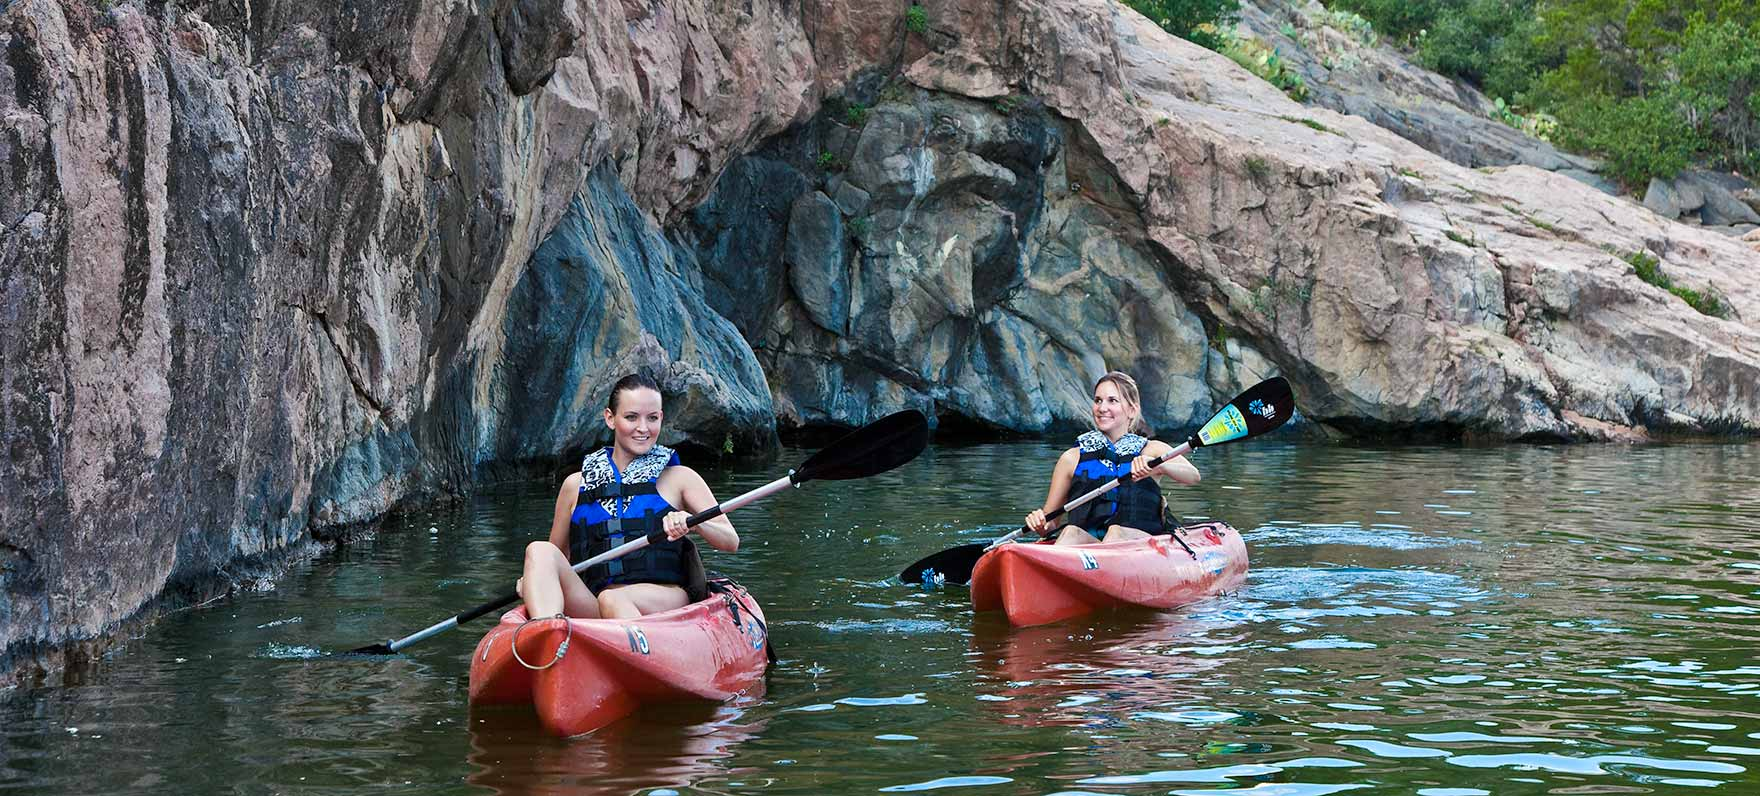 Dive in: 5 Ways to Play at Inks Lake State Park